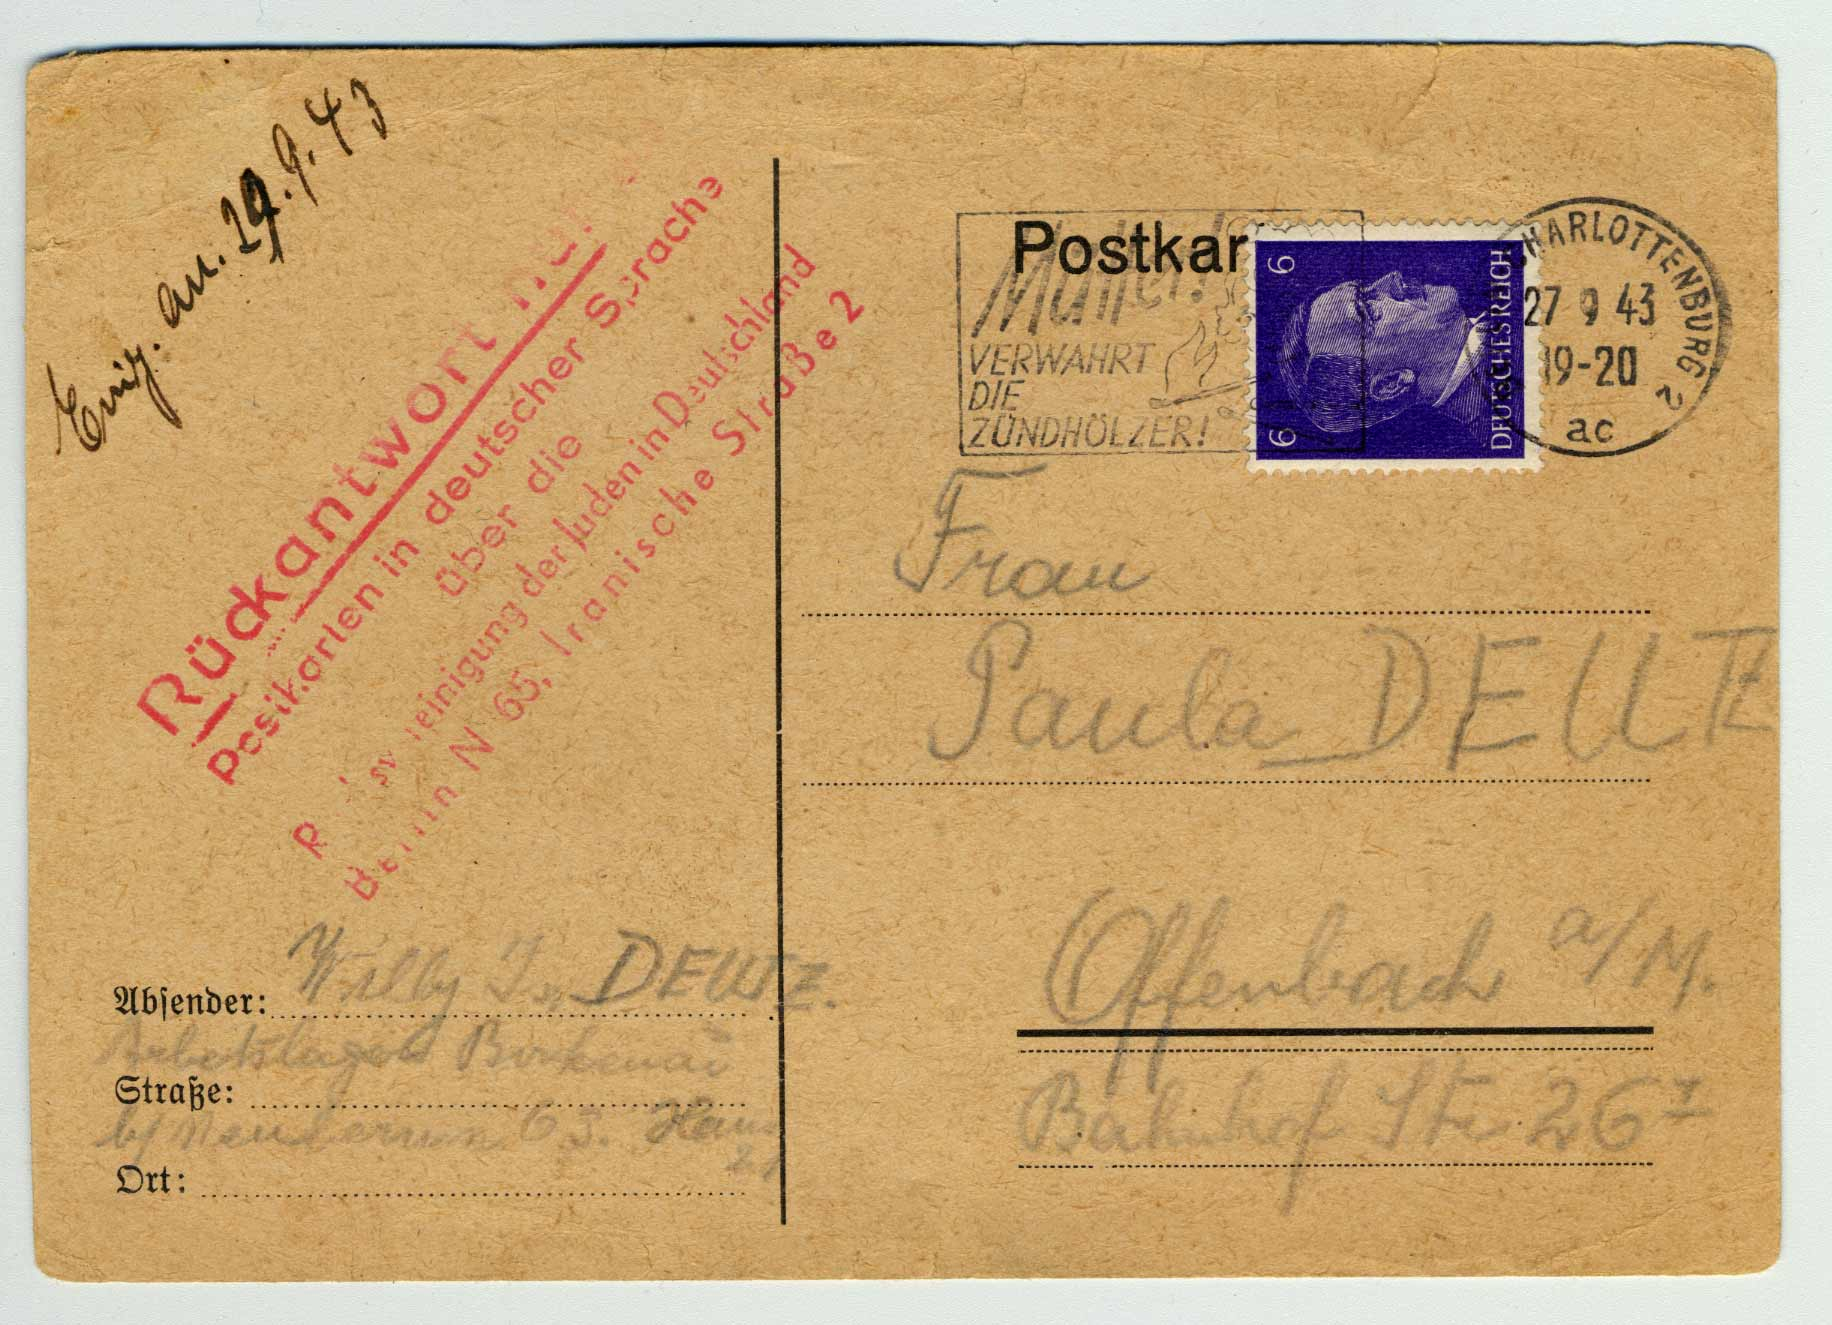 Postcard written by Willy from Auschwitz-Birkenau. Paula received it on September 24, 1943, one month after her husband's death.